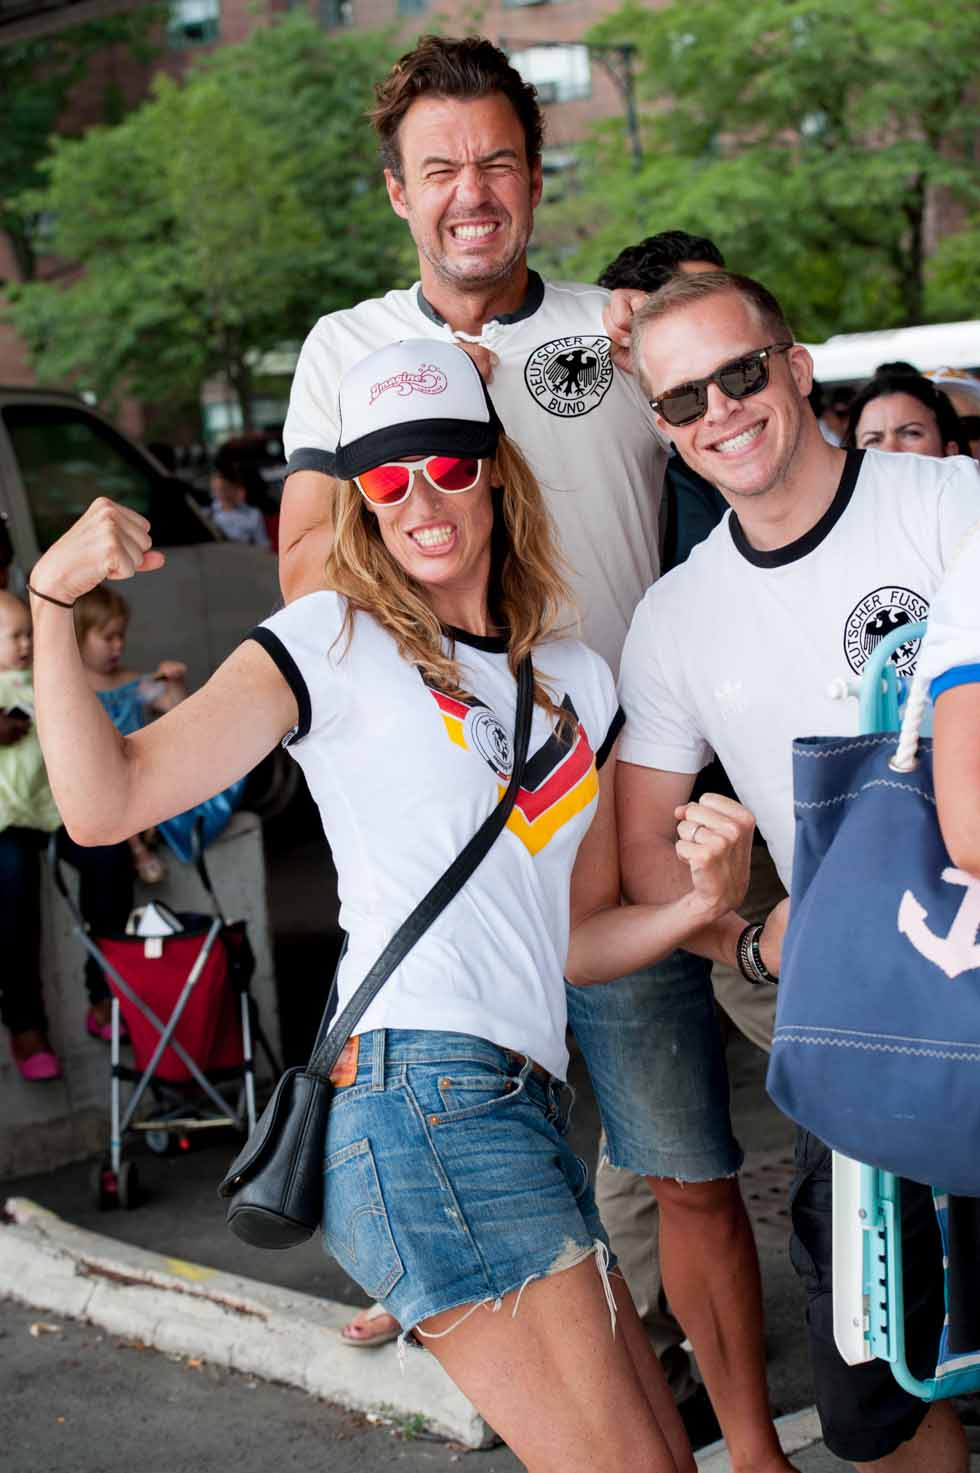 zum-schneider-nyc-2014-world-cup-germany-usa-8384.jpg